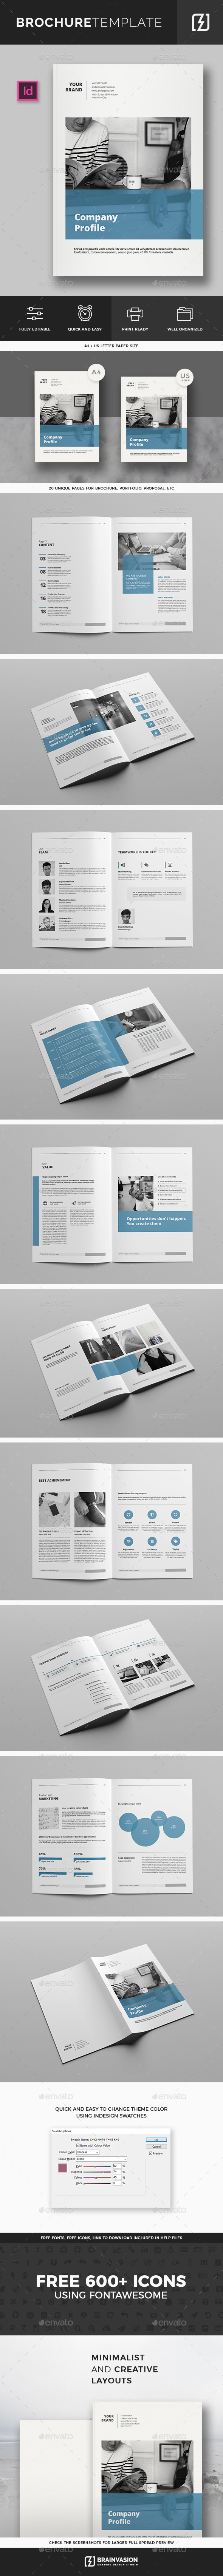 Company Profile Brochure Template By Brainvasion GraphicRiver - Company profile brochure template